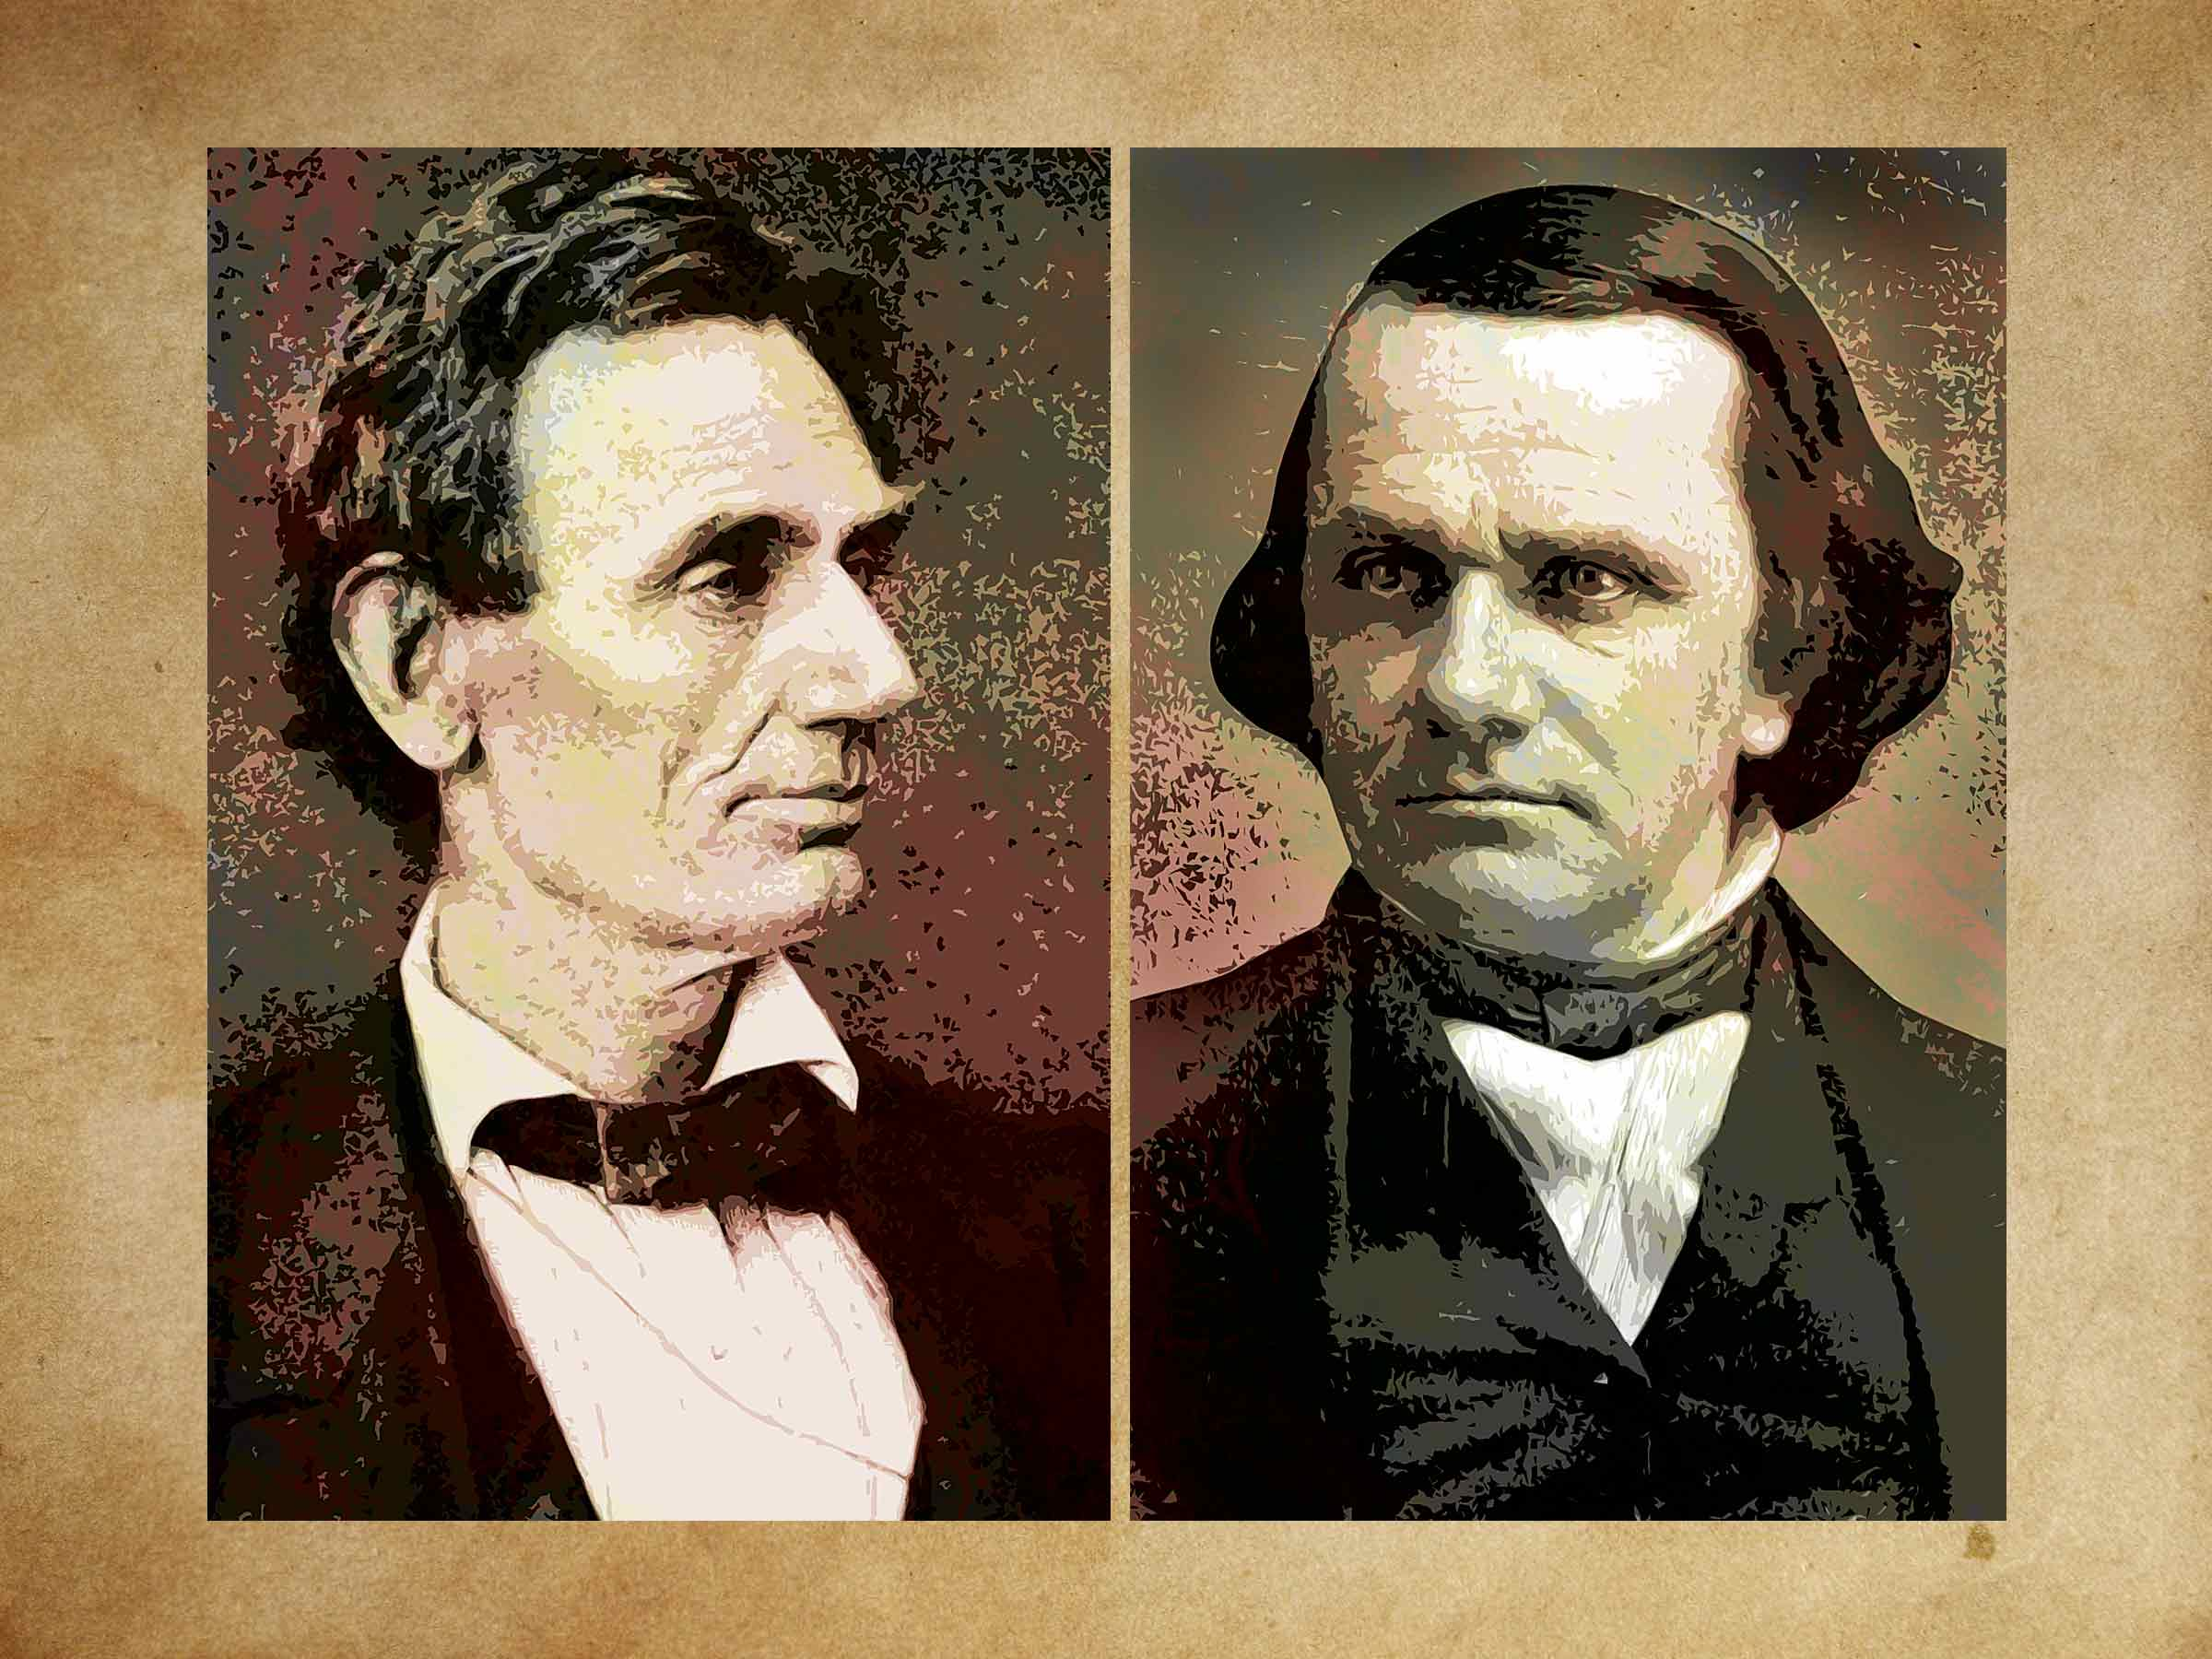 lincoln and douglas debates Links to a series of podcasts about the lincoln-douglas debates with rodney davis and douglas wilson, co-directors of the lincoln studies center at knox college they discuss each of the lincoln-douglas debates, and their book, the lincoln douglas debates: the lincoln studies center edition, is the first critical edition of the debate.